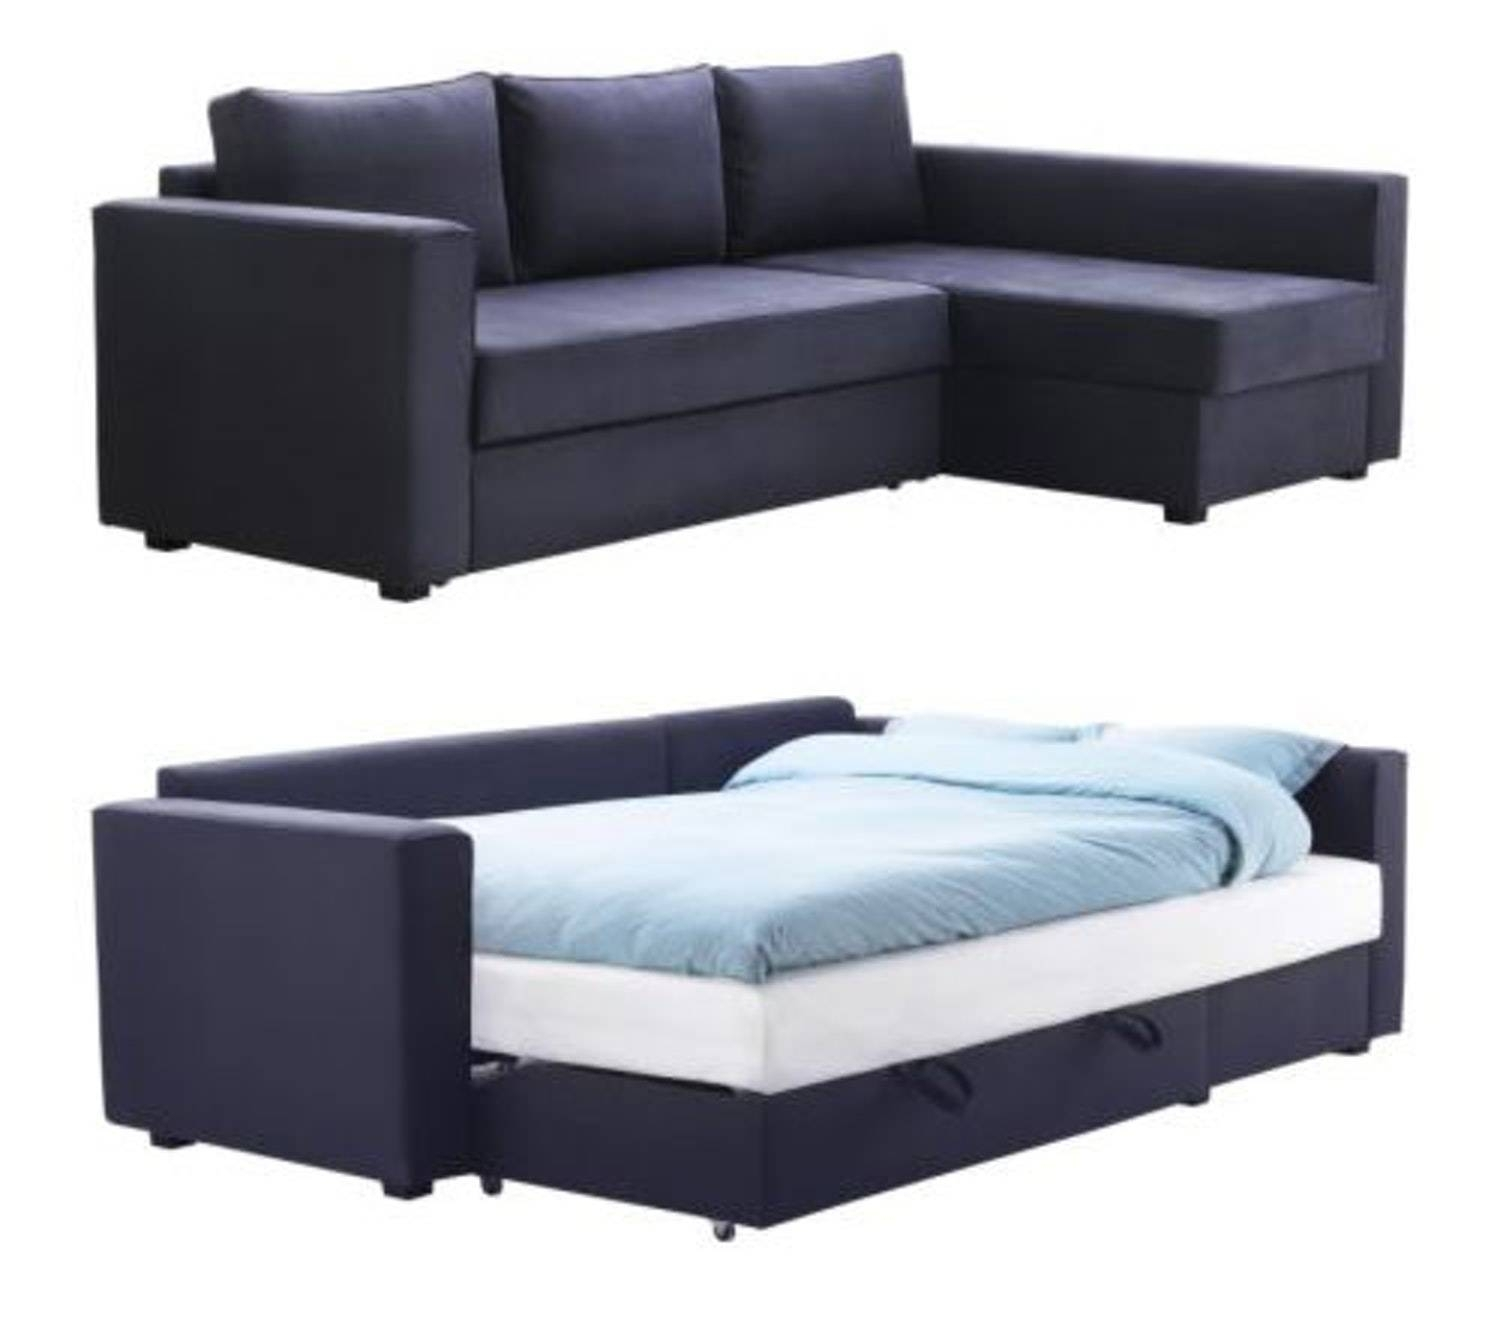 sofa bed buy ideas on foter rh foter com where can i buy a sofa bed mechanism where to buy a sofa bed in paris